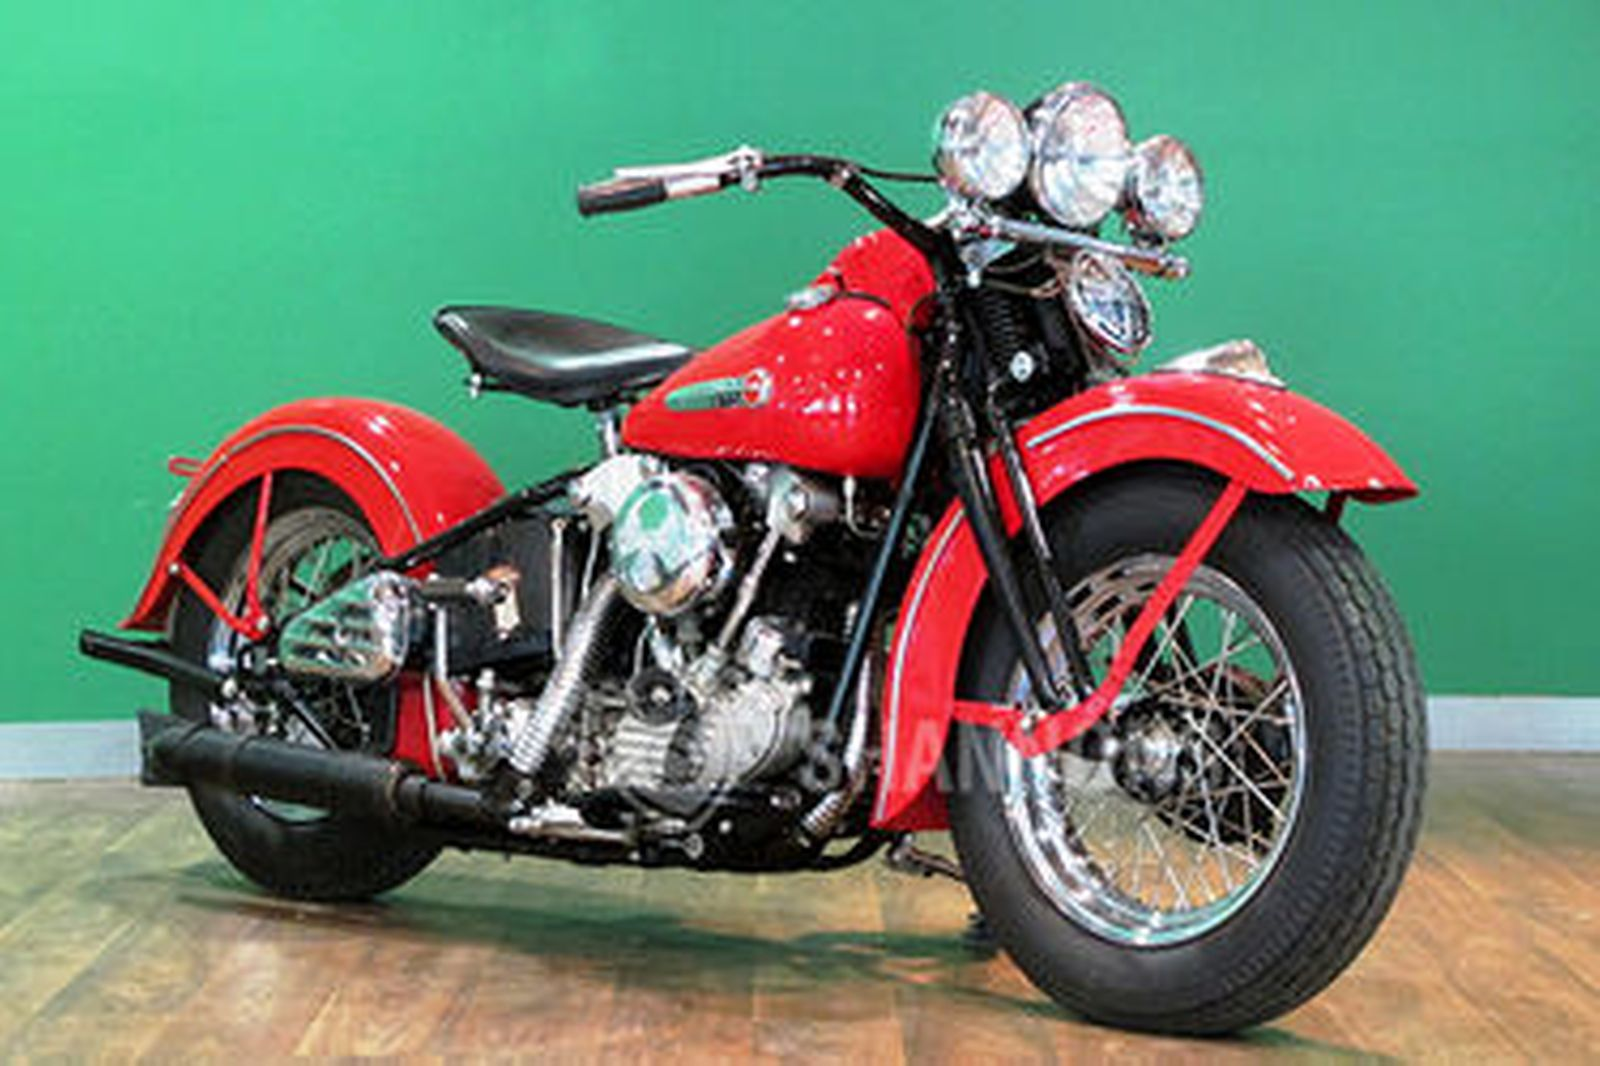 Harley Davidson: Sold: Harley Davidson 'Knucklehead' Motorcycle Auctions